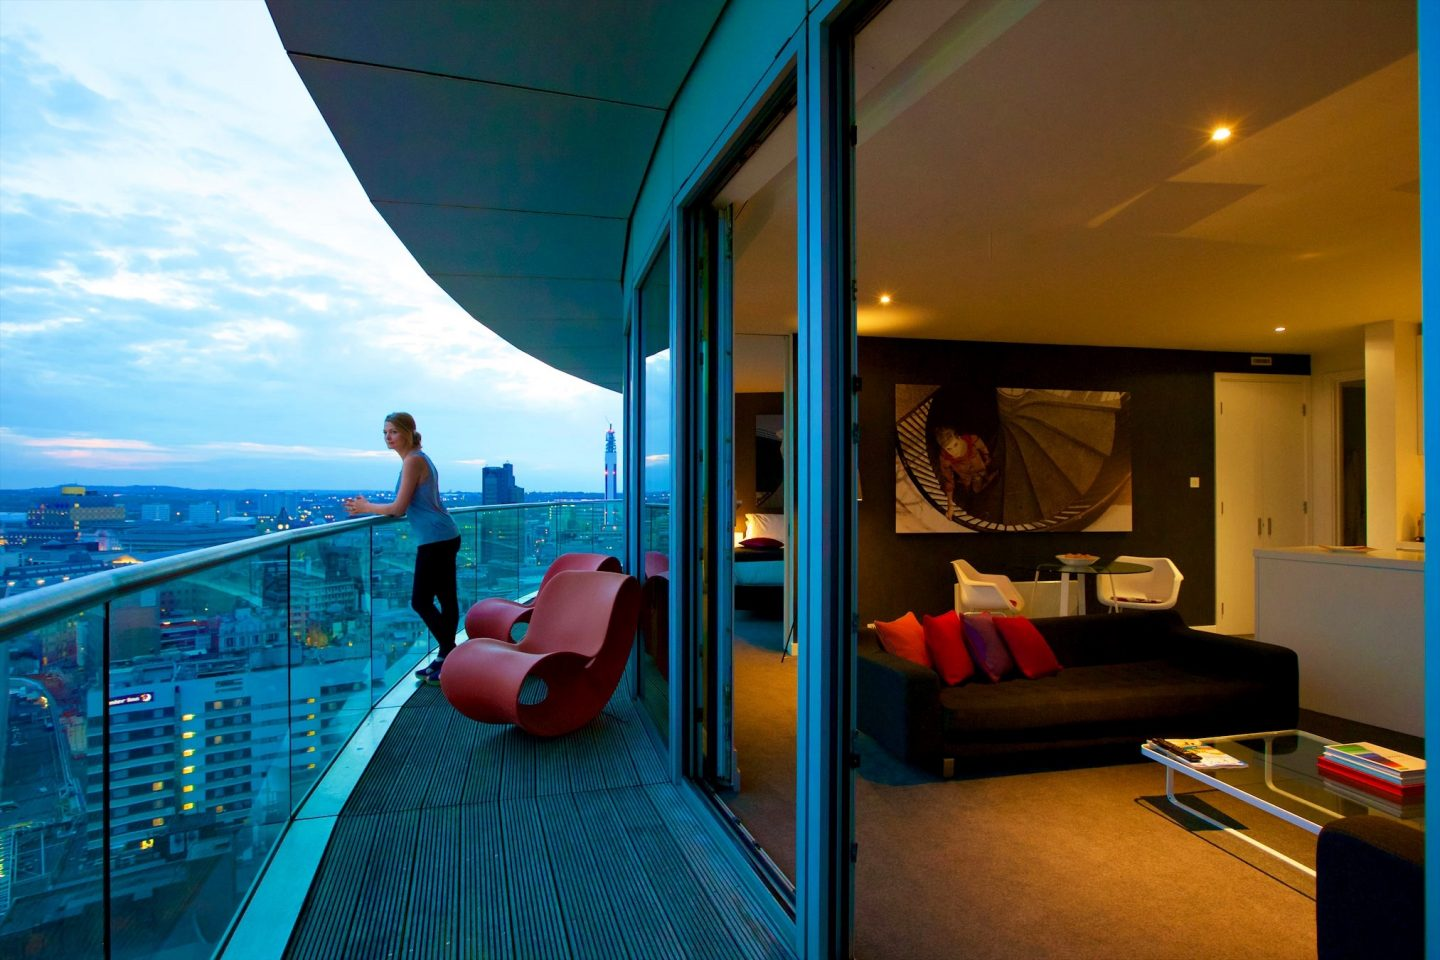 Guest admiring the city view on a Staying Cool penthouse balcony